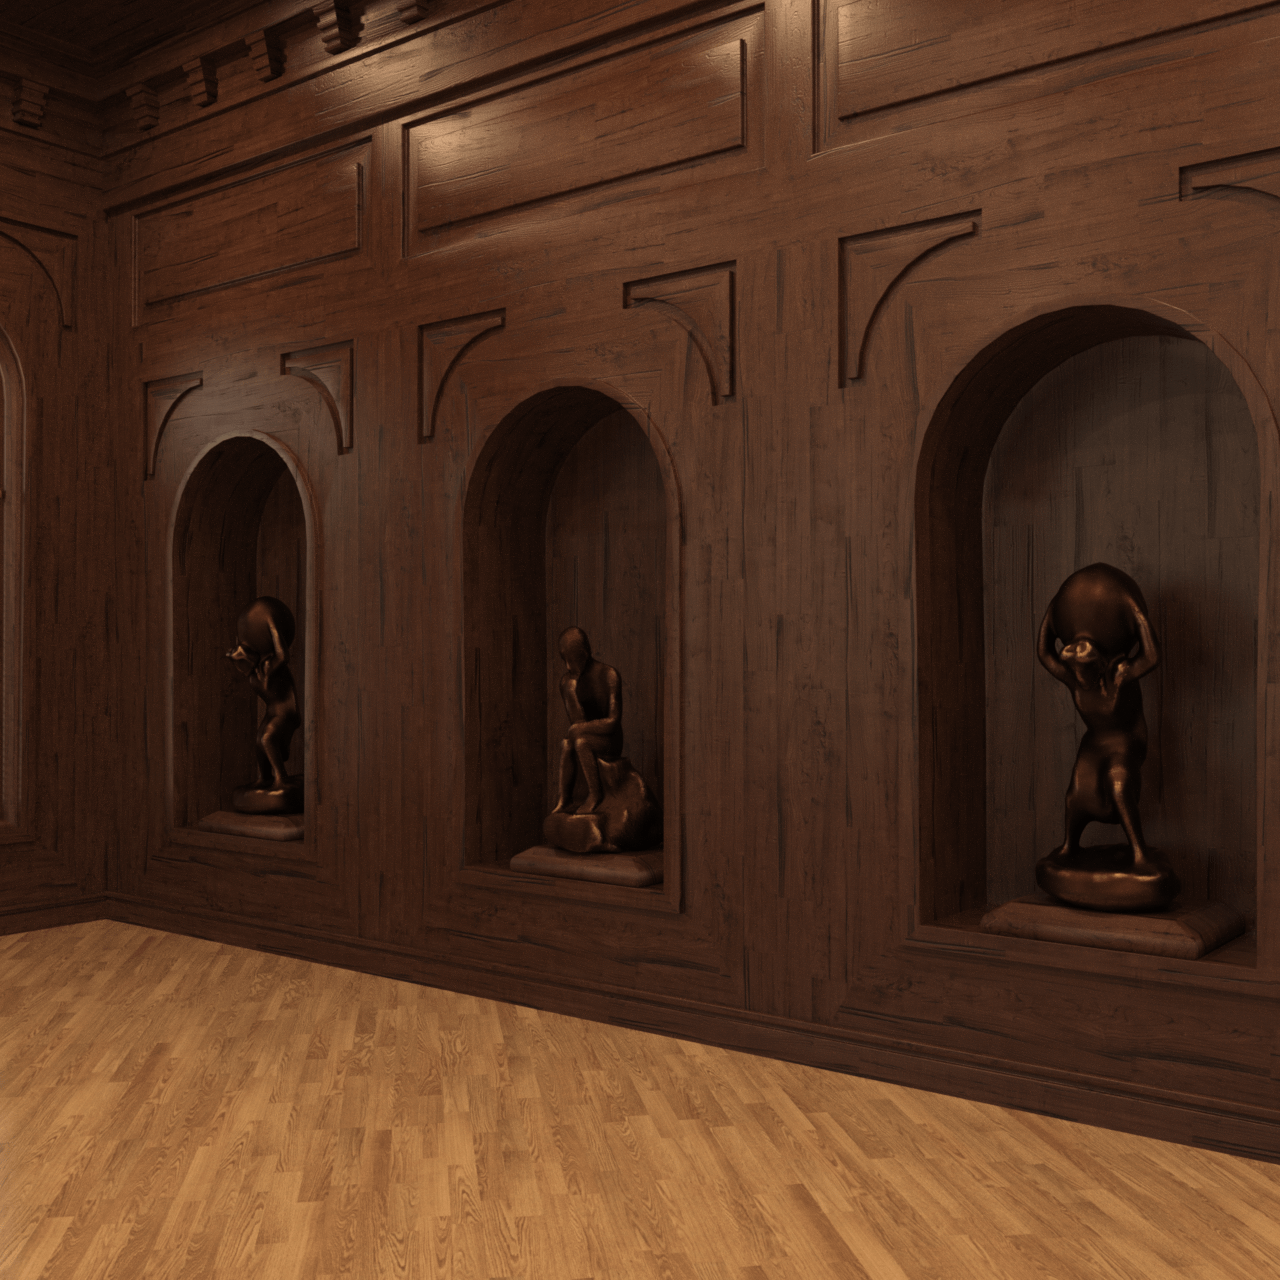 Three sculpted pieces inside the walls render.